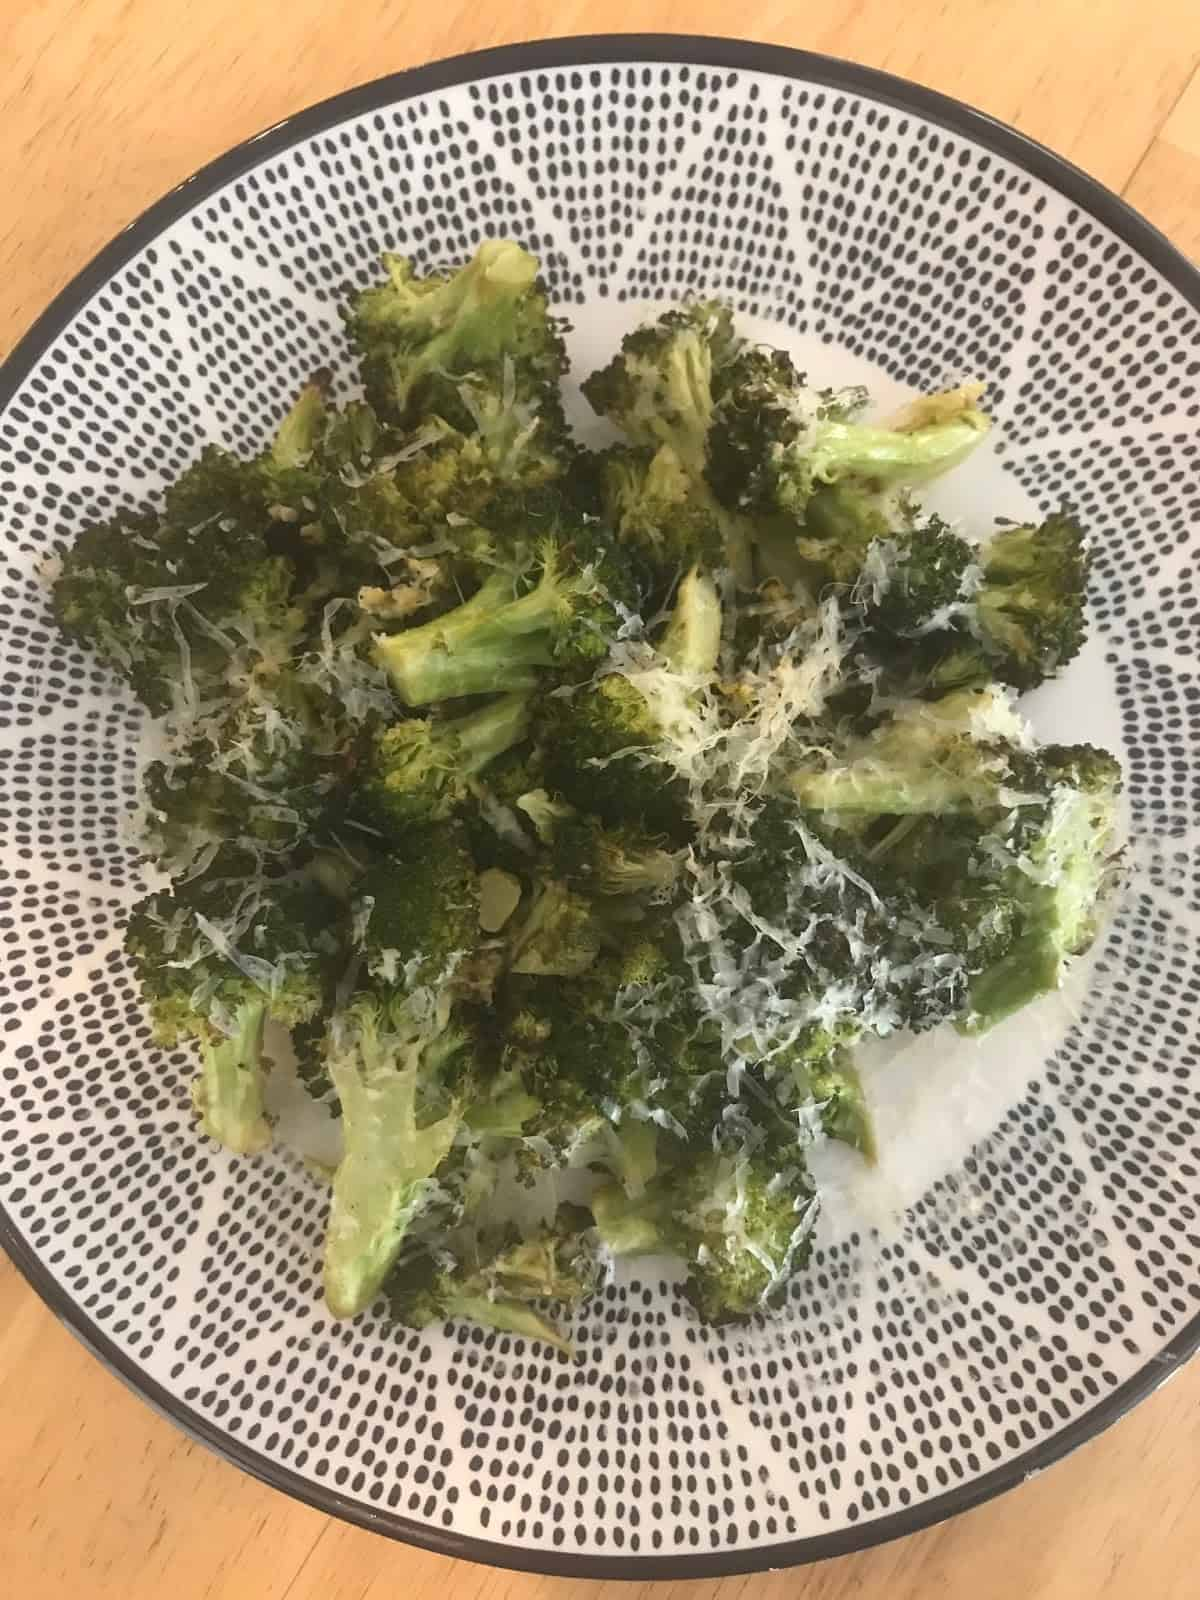 Lemon-Parmesan Roasted Broccoli + A Trip to the Pool